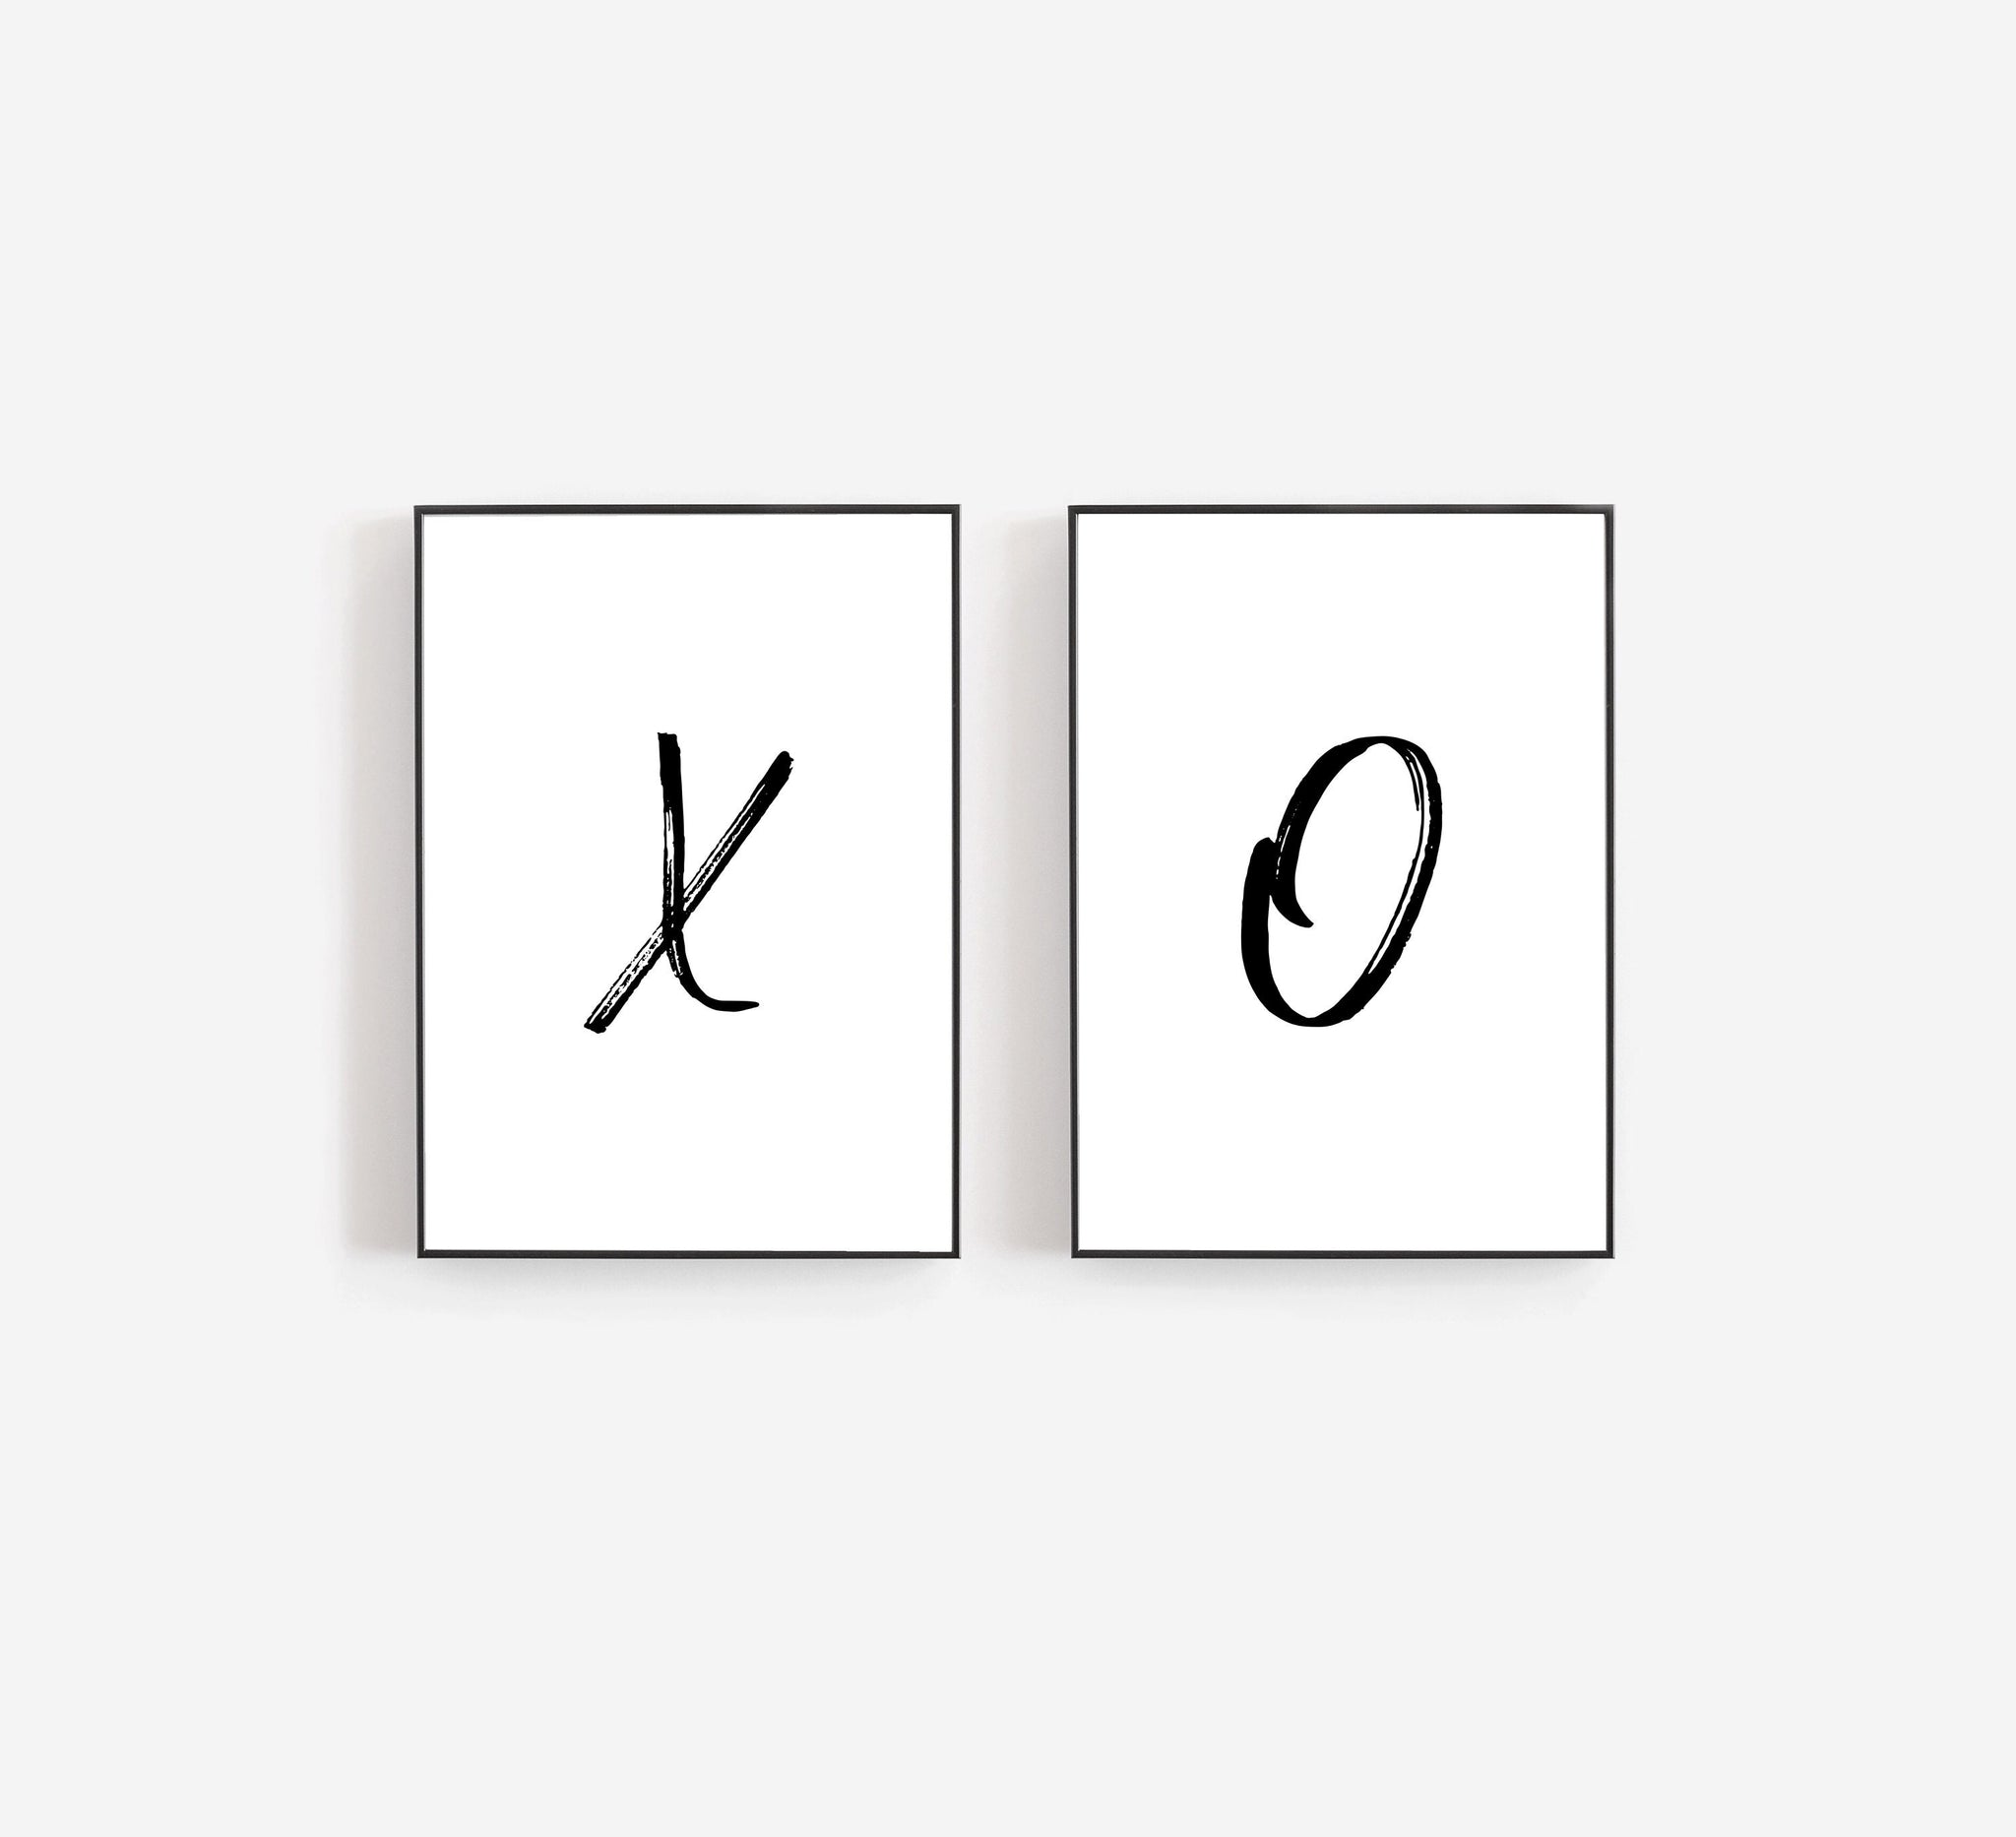 Set Of Two Prints, XO Art Print, XO Wall Art, Love Wall Decor, Bedroom Art Print,Bedroom Wall Decor,Brushstroke Typography, Black and White